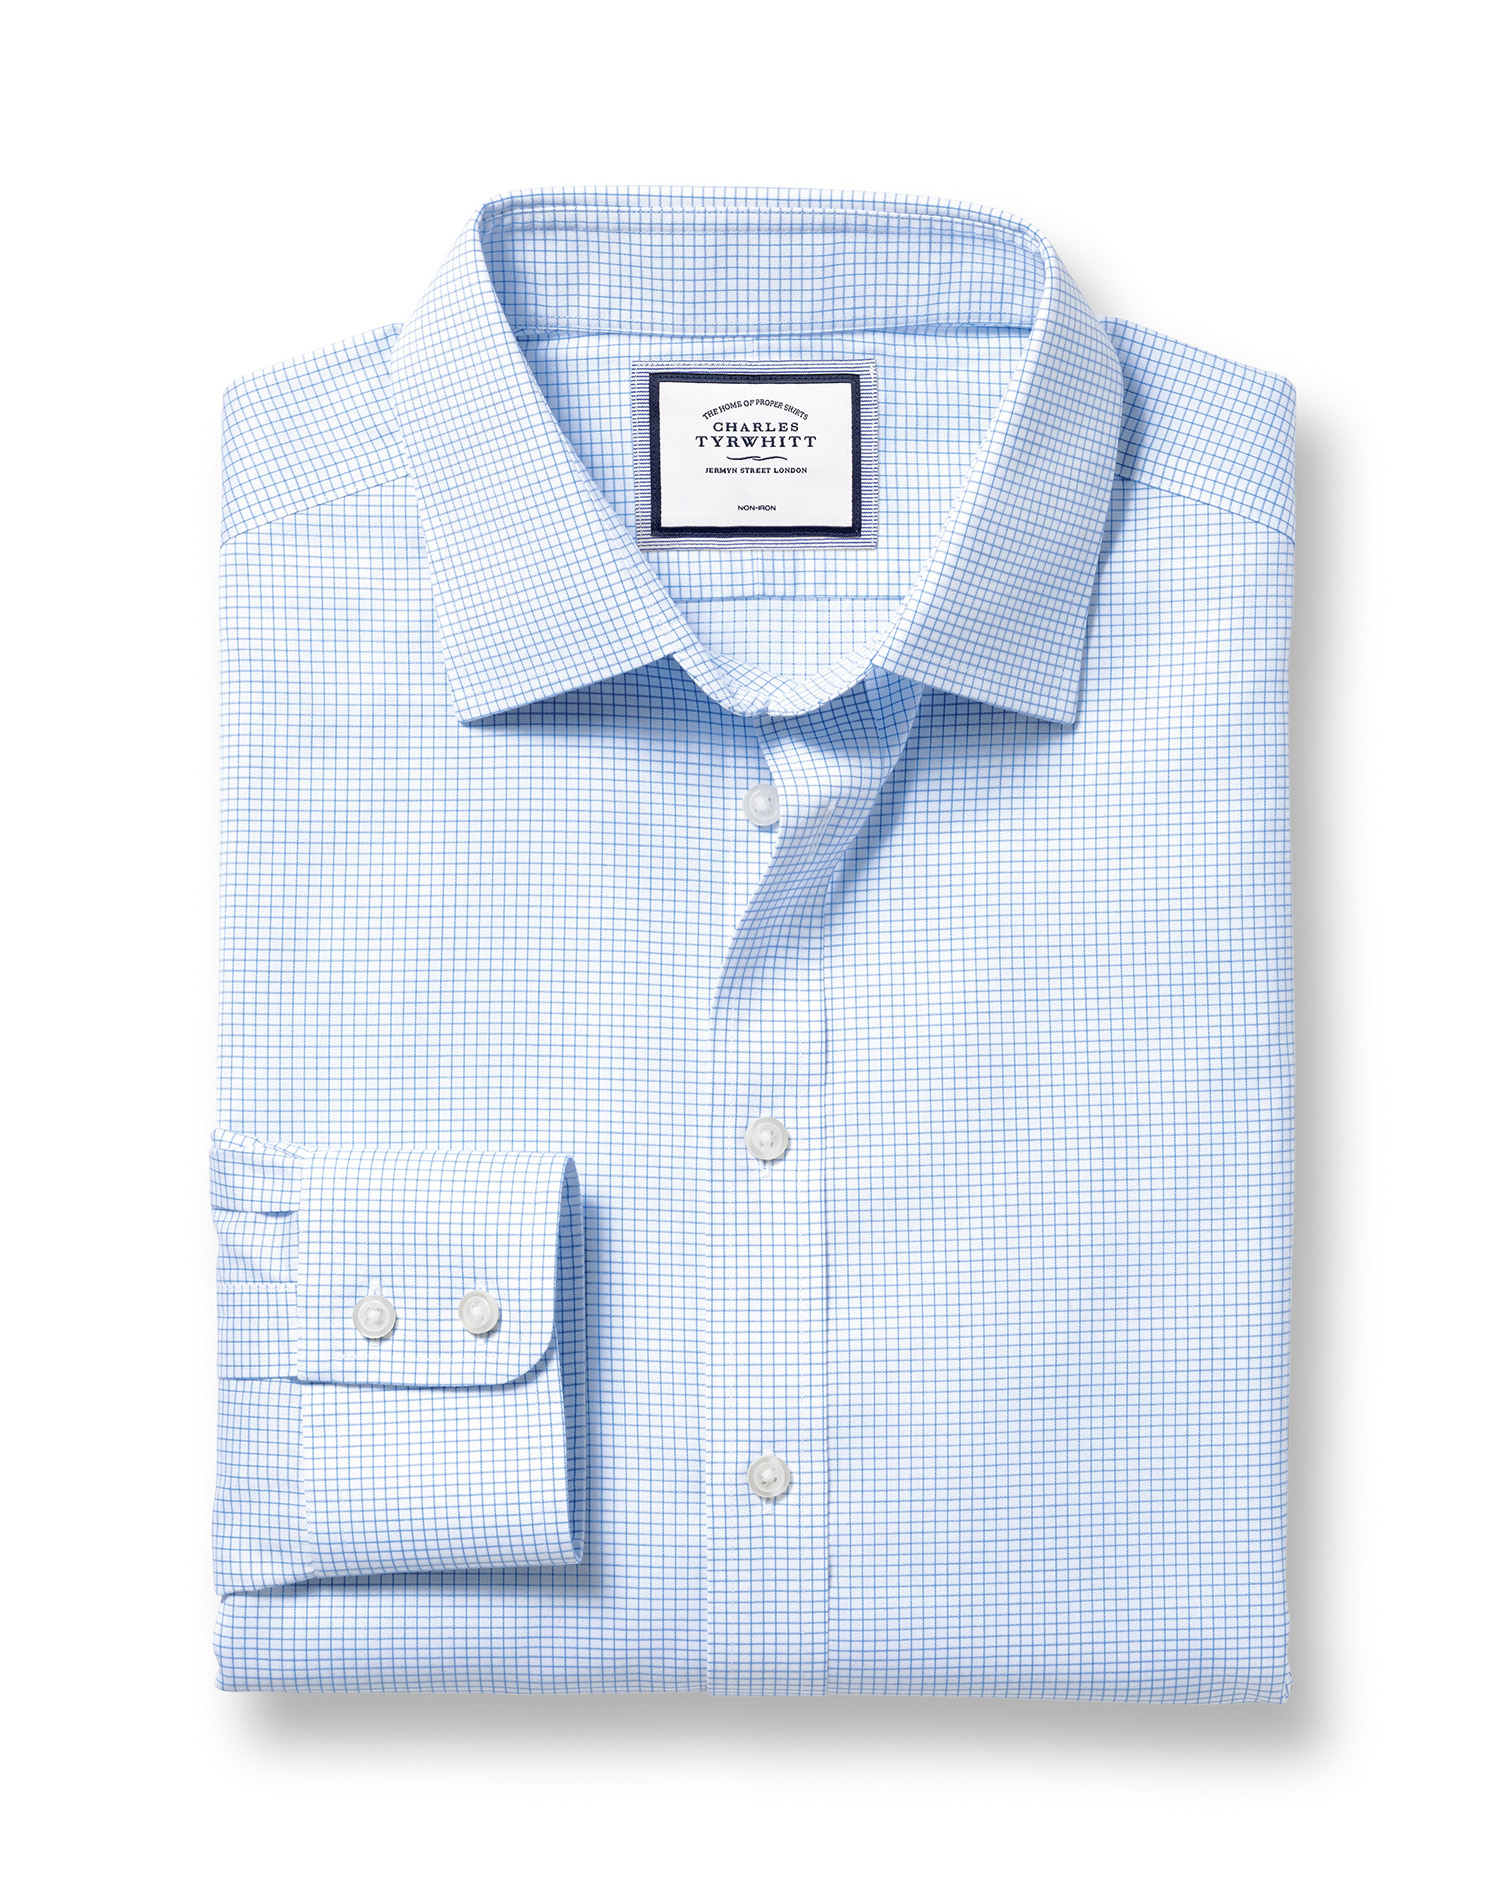 Classic Fit Non-Iron Twill Mini Grid Check Sky Blue Cotton Formal Shirt Double Cuff Size 16.5/34 by